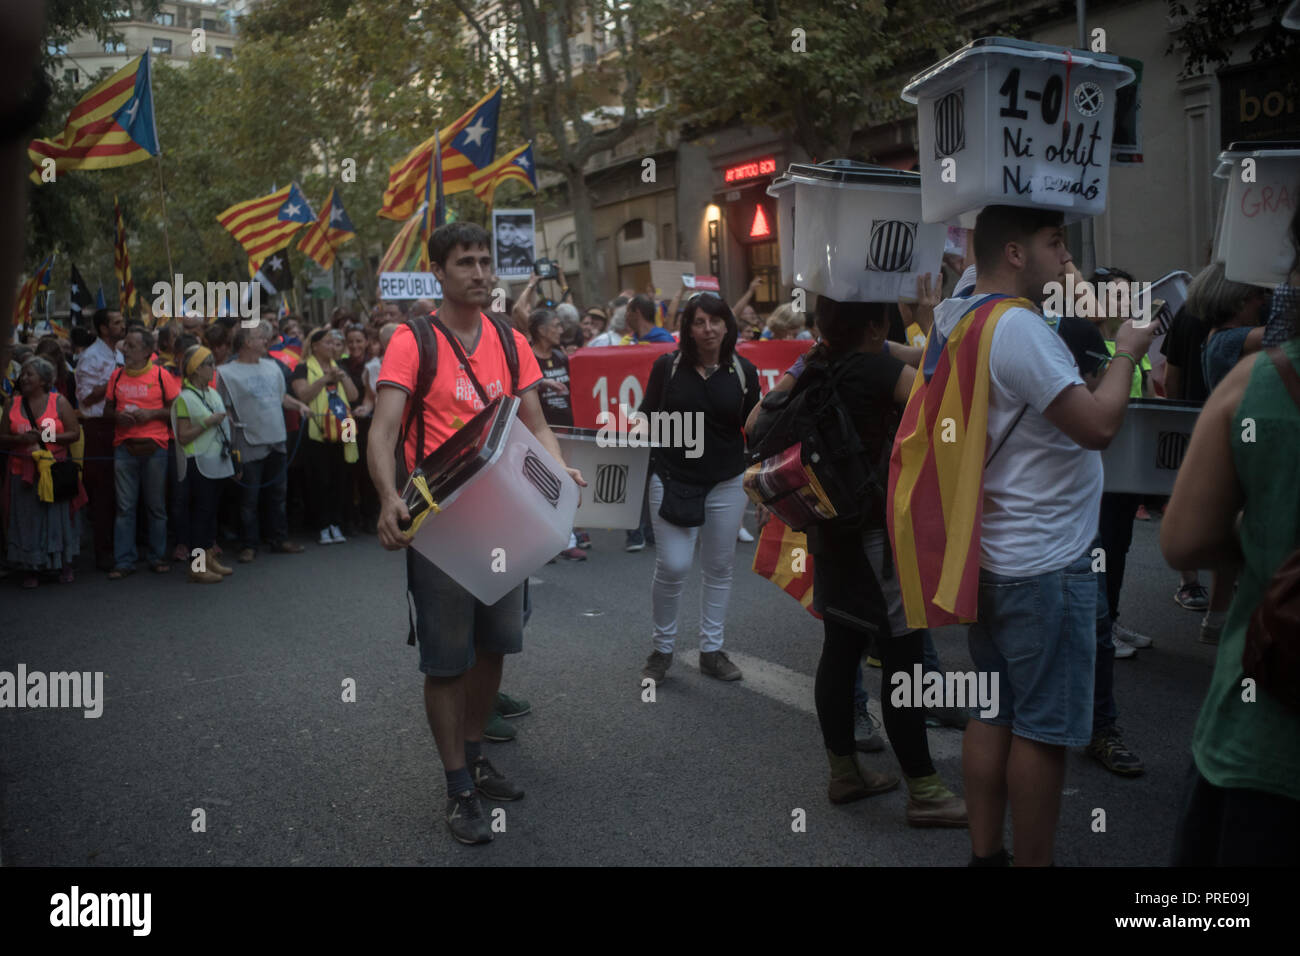 October 01, 2018 - Barcelona, Catalonia, Spain - People holding  ballot boxes used on past independence referendum banned by Spanish kingdom goes by  Barcelona streets on first October 2018. Thousands marched in Barcelona remembering the referendum on independence held a year ago that led hundreds of injured voters due the Spanish police crackdown. - Stock Image